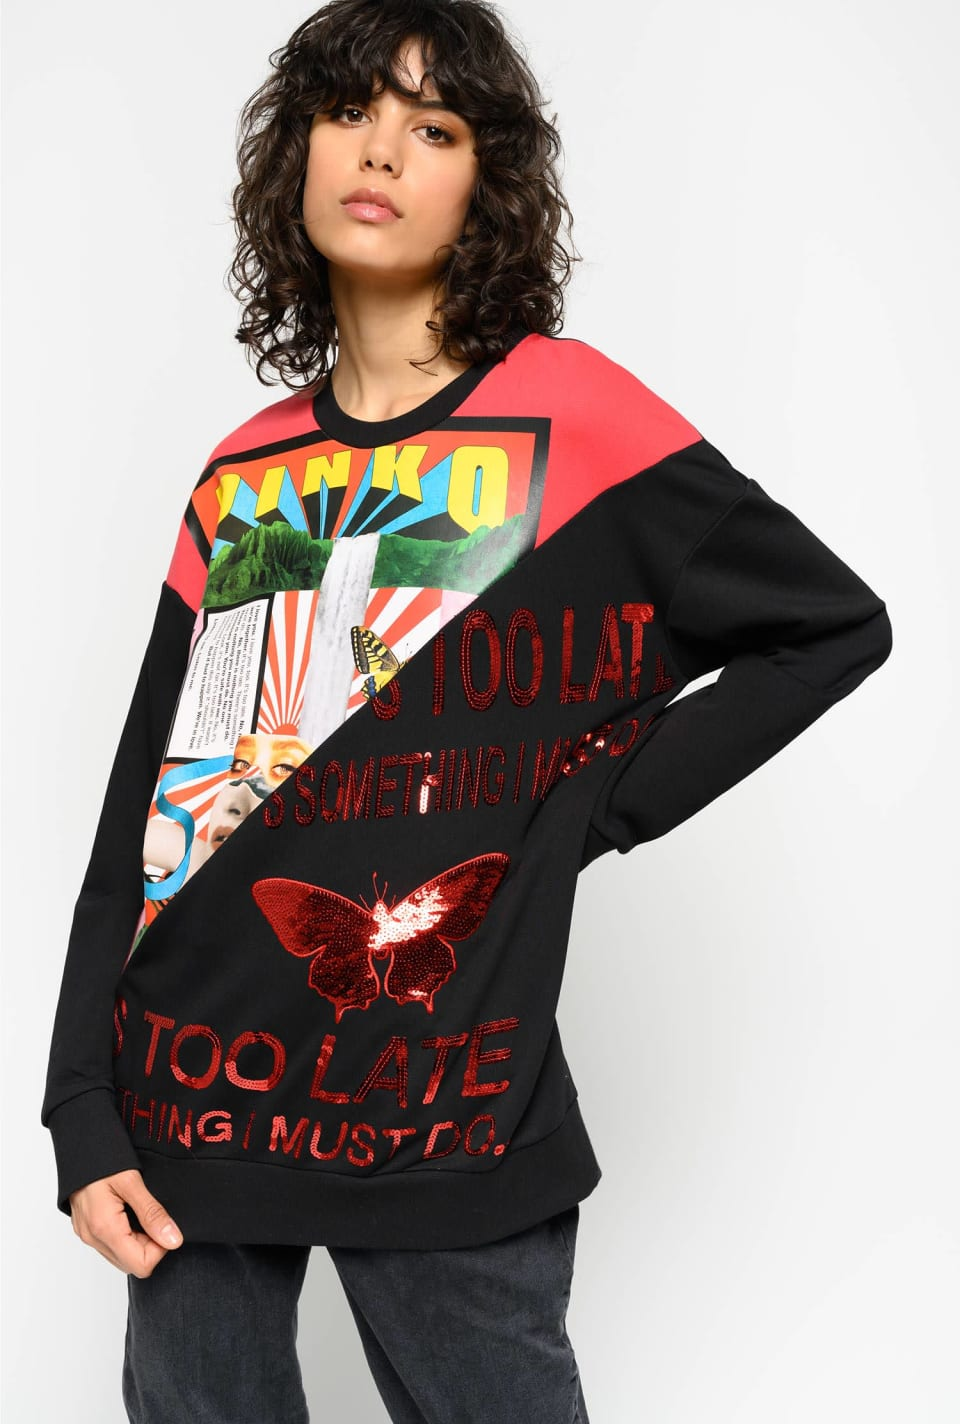 Sweatshirt with print and lettering